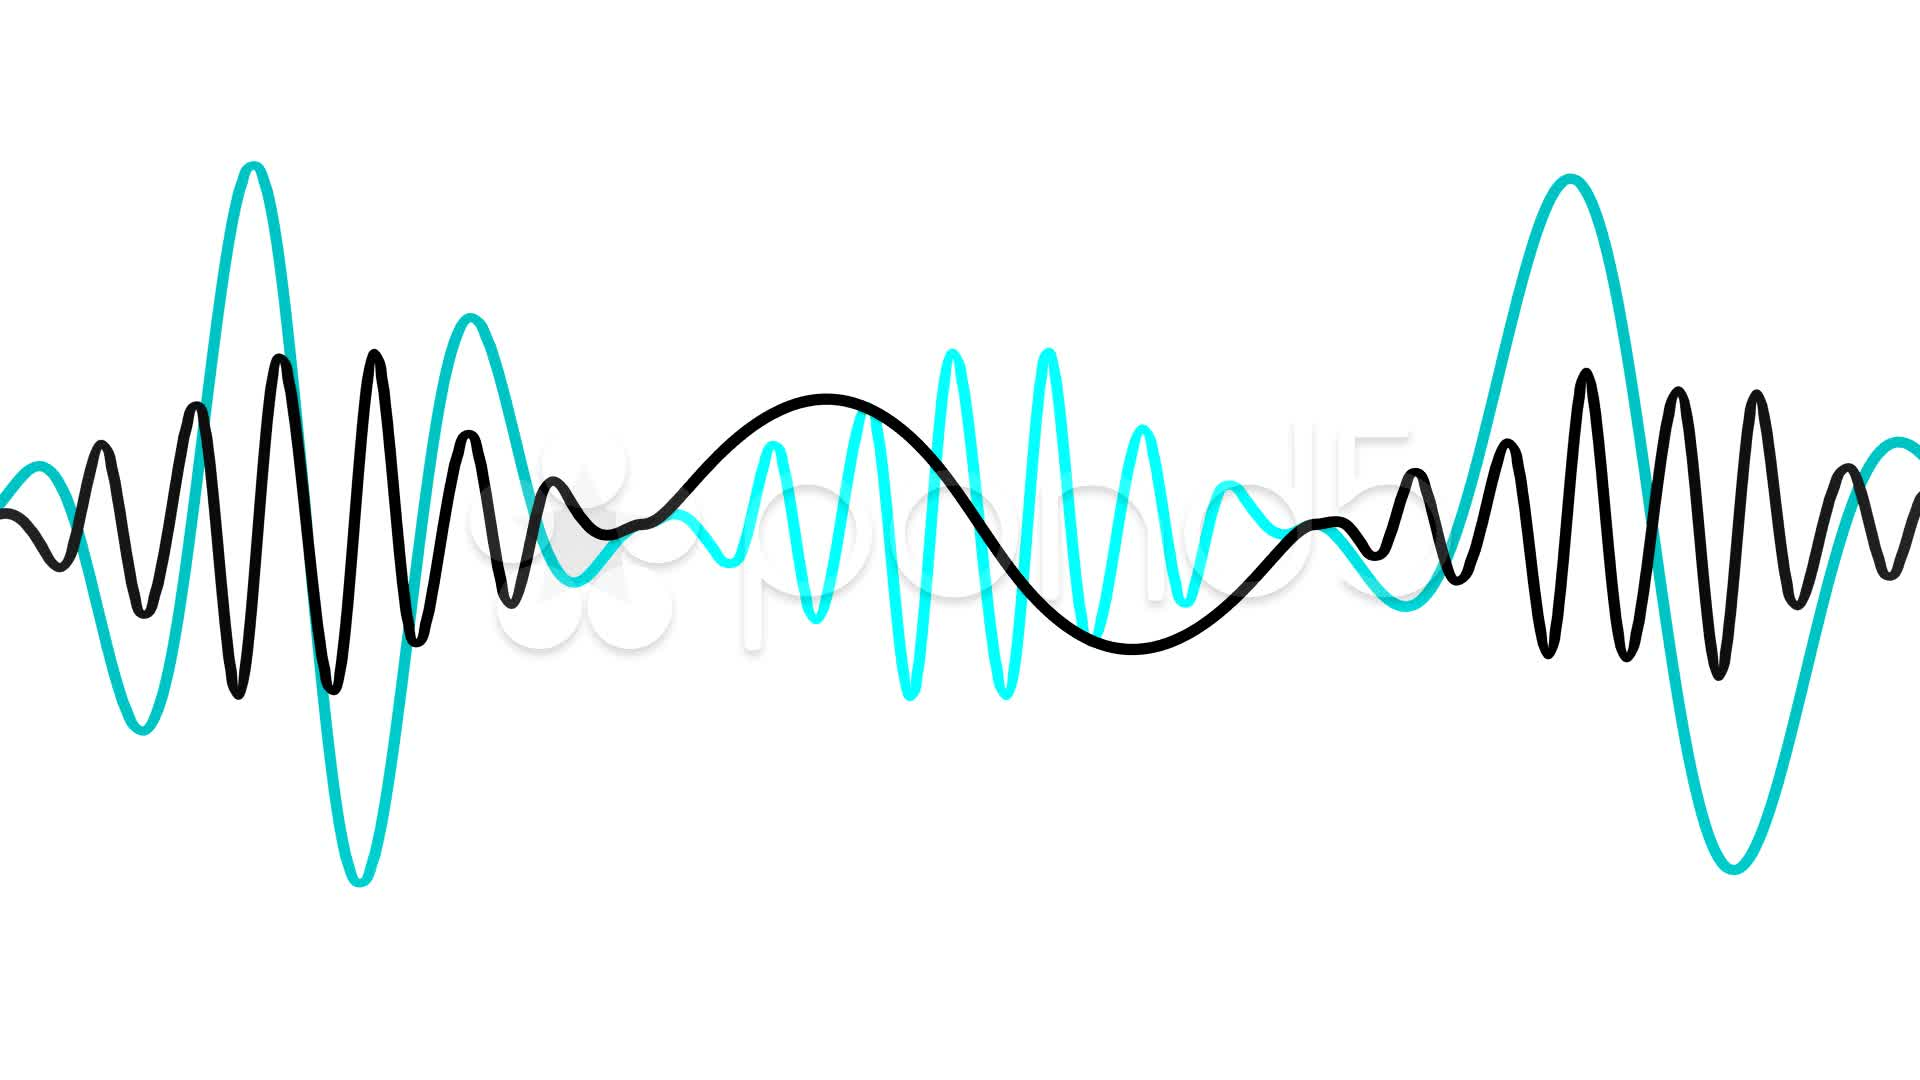 13 sound wave vector images vector sound waves clip art audio rh newdesignfile com